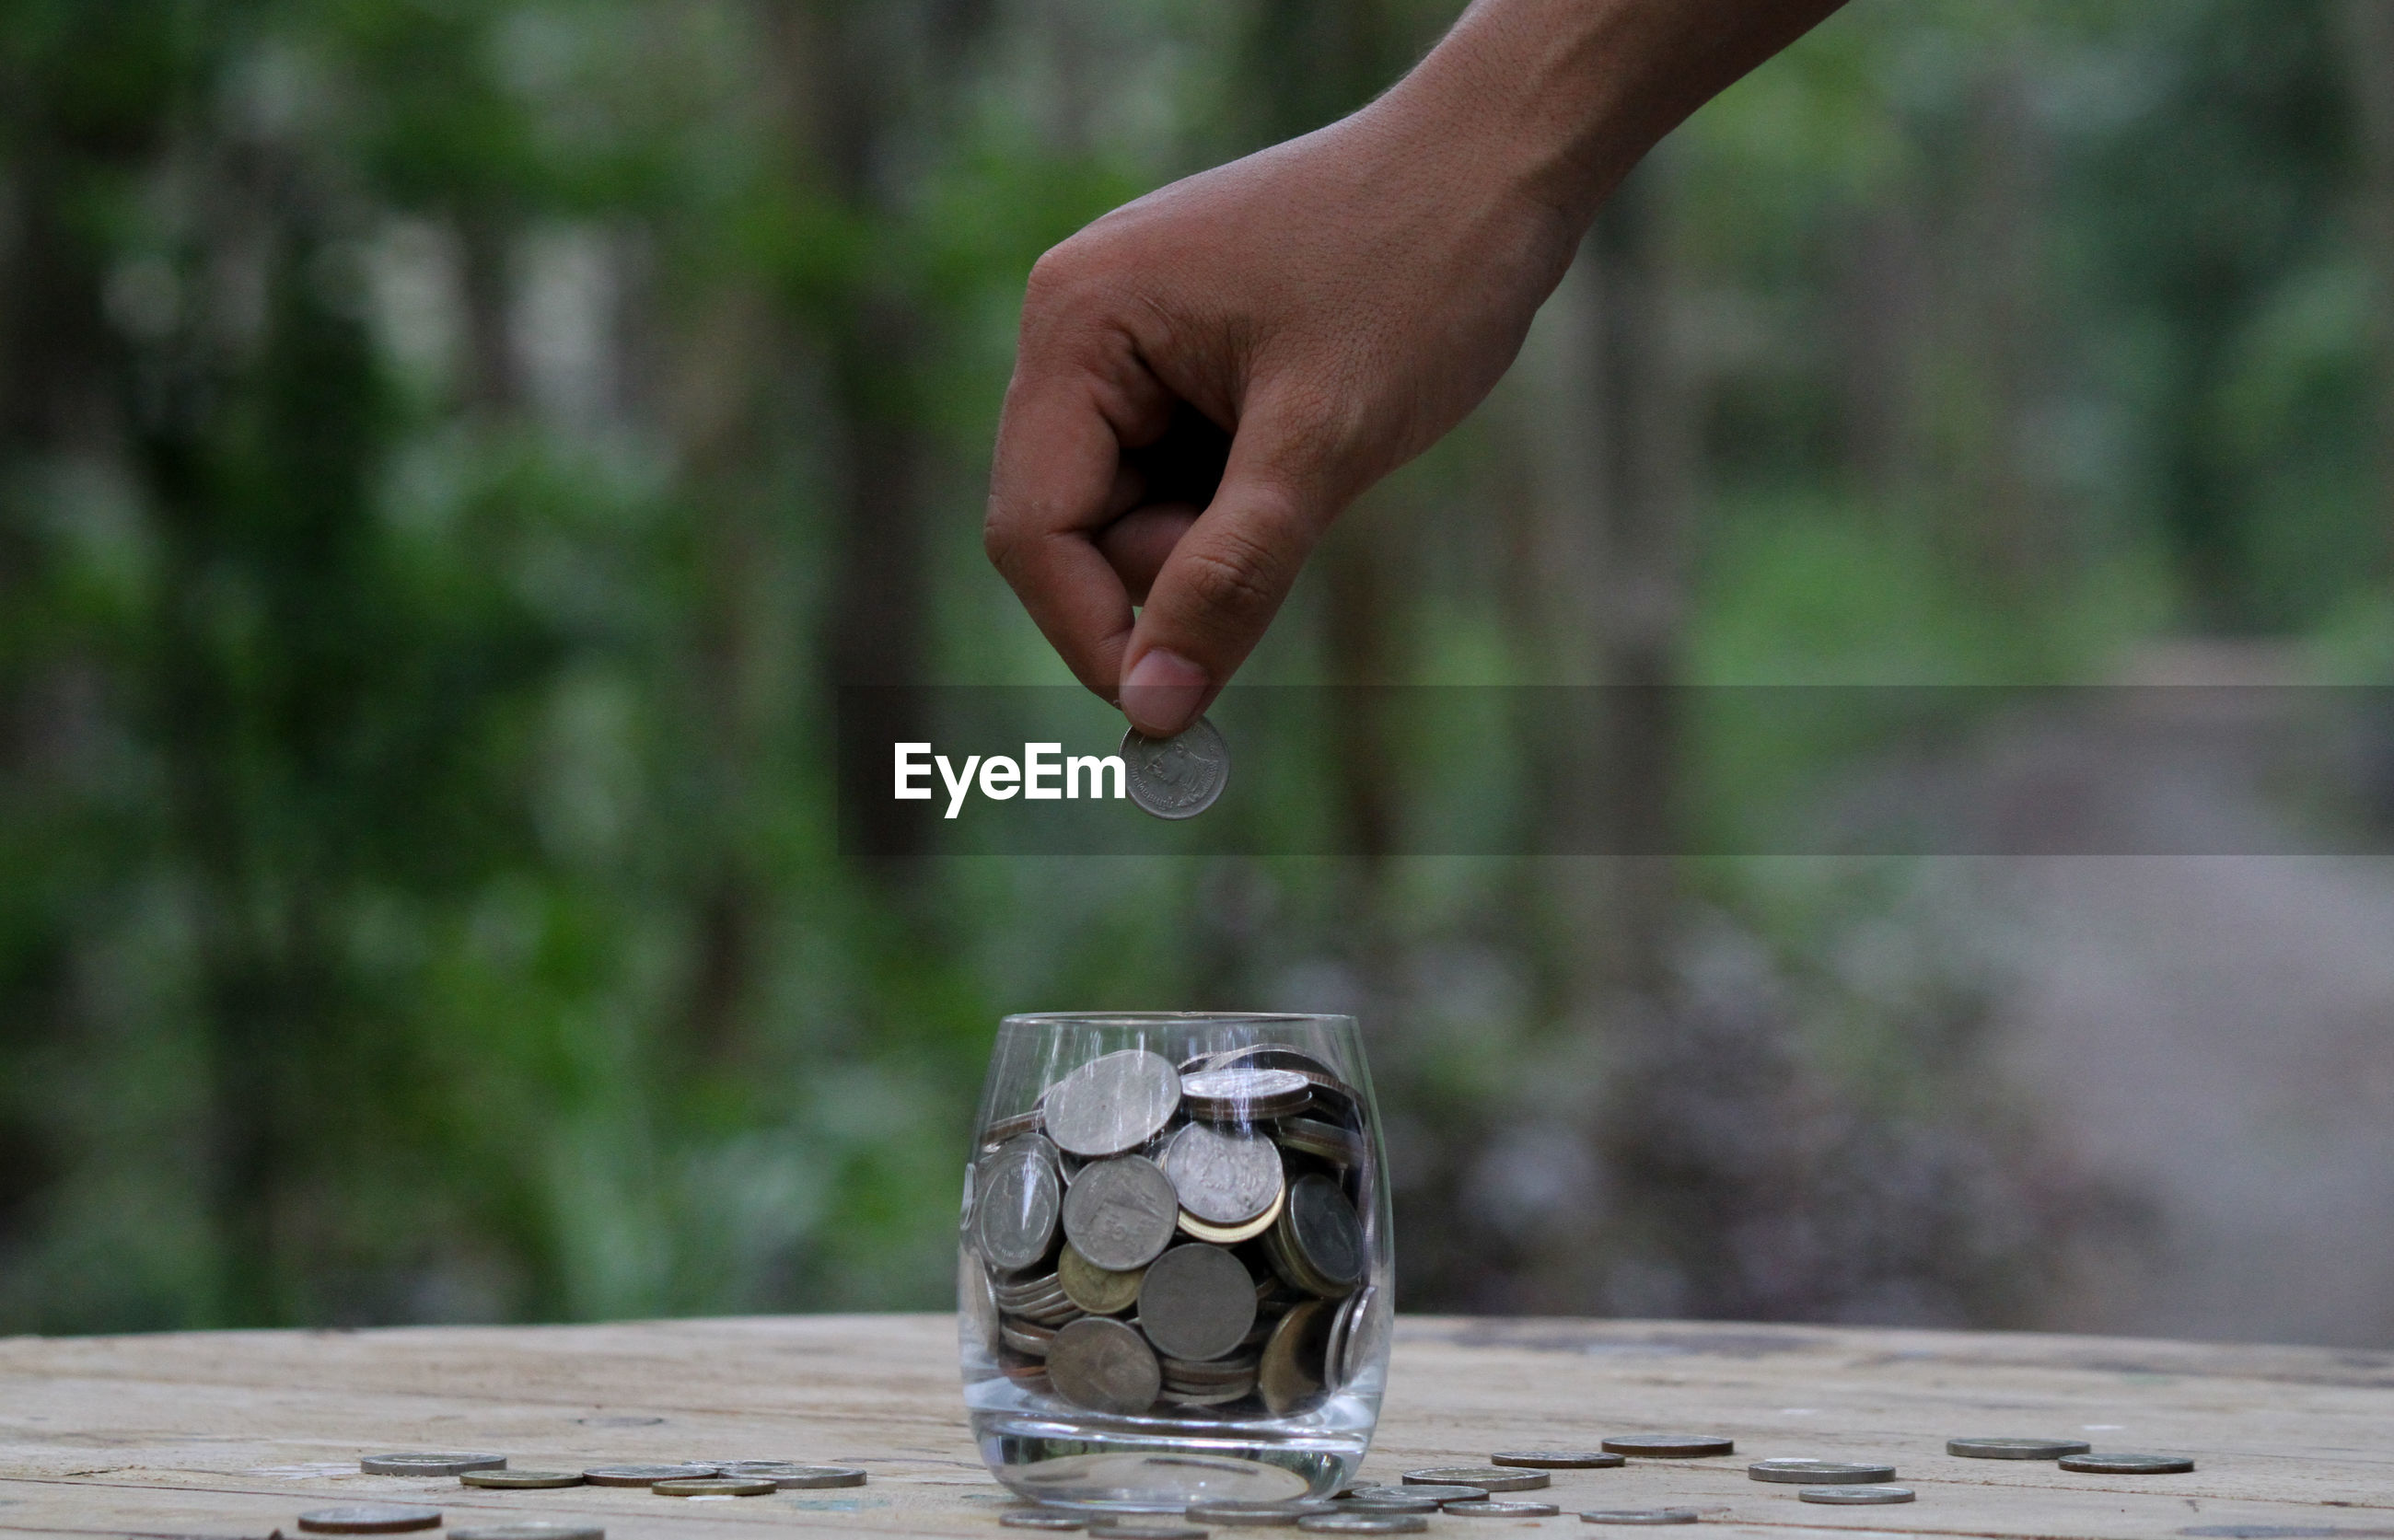 Cropped hand of man dropping coins in drinking glass on table against trees